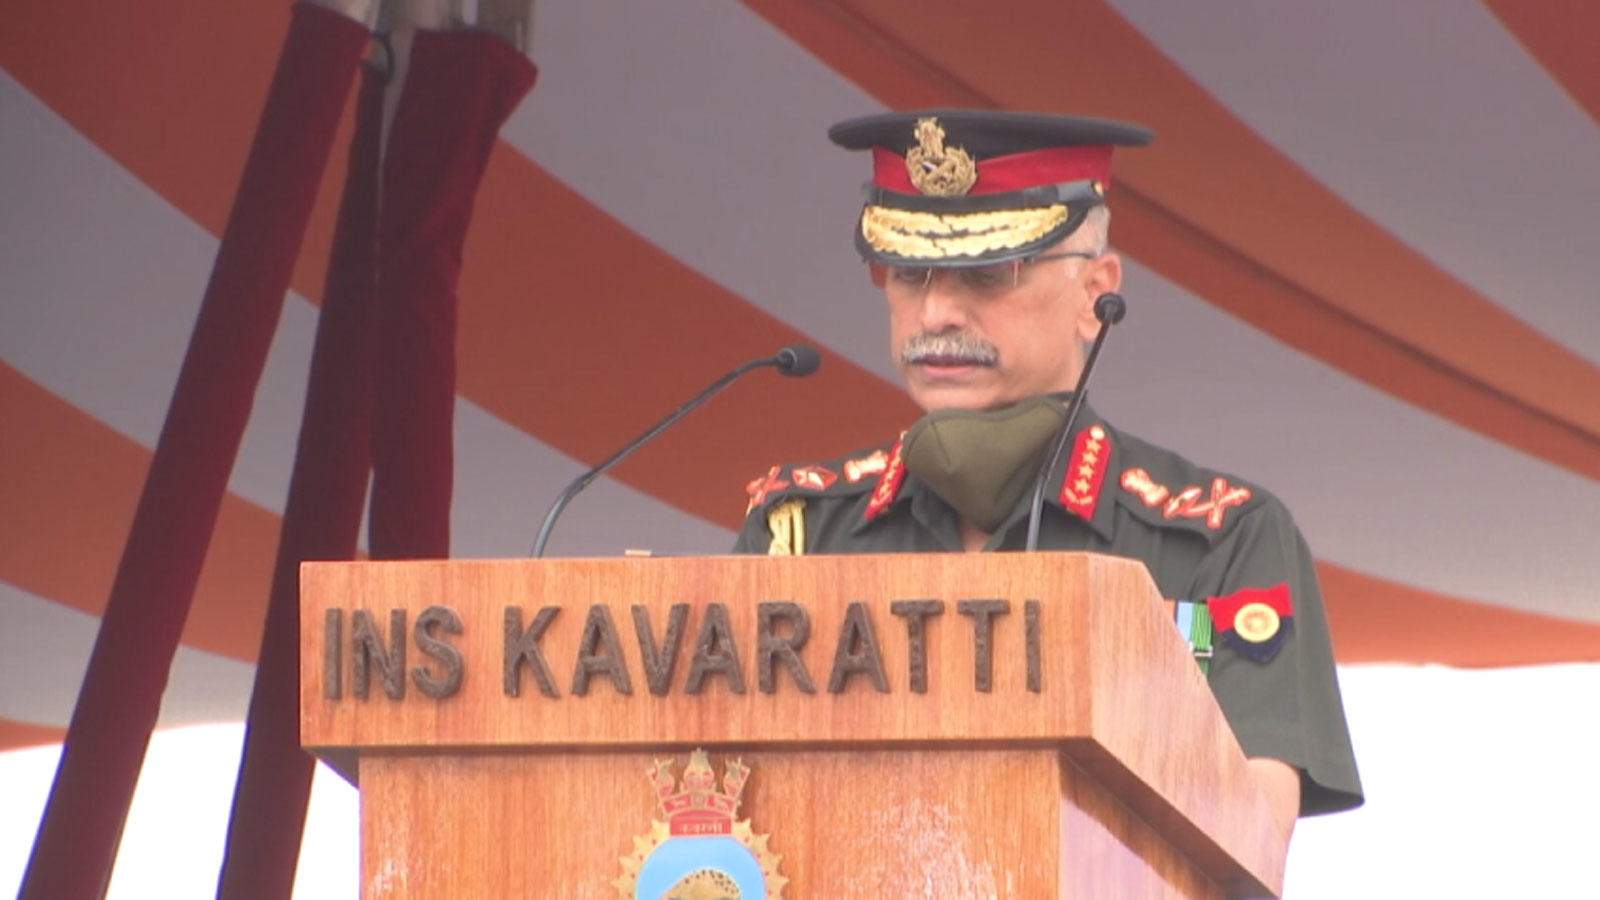 commissioning-of-ins-kavaratti-significant-step-for-countrys-maritime-goals-army-chief